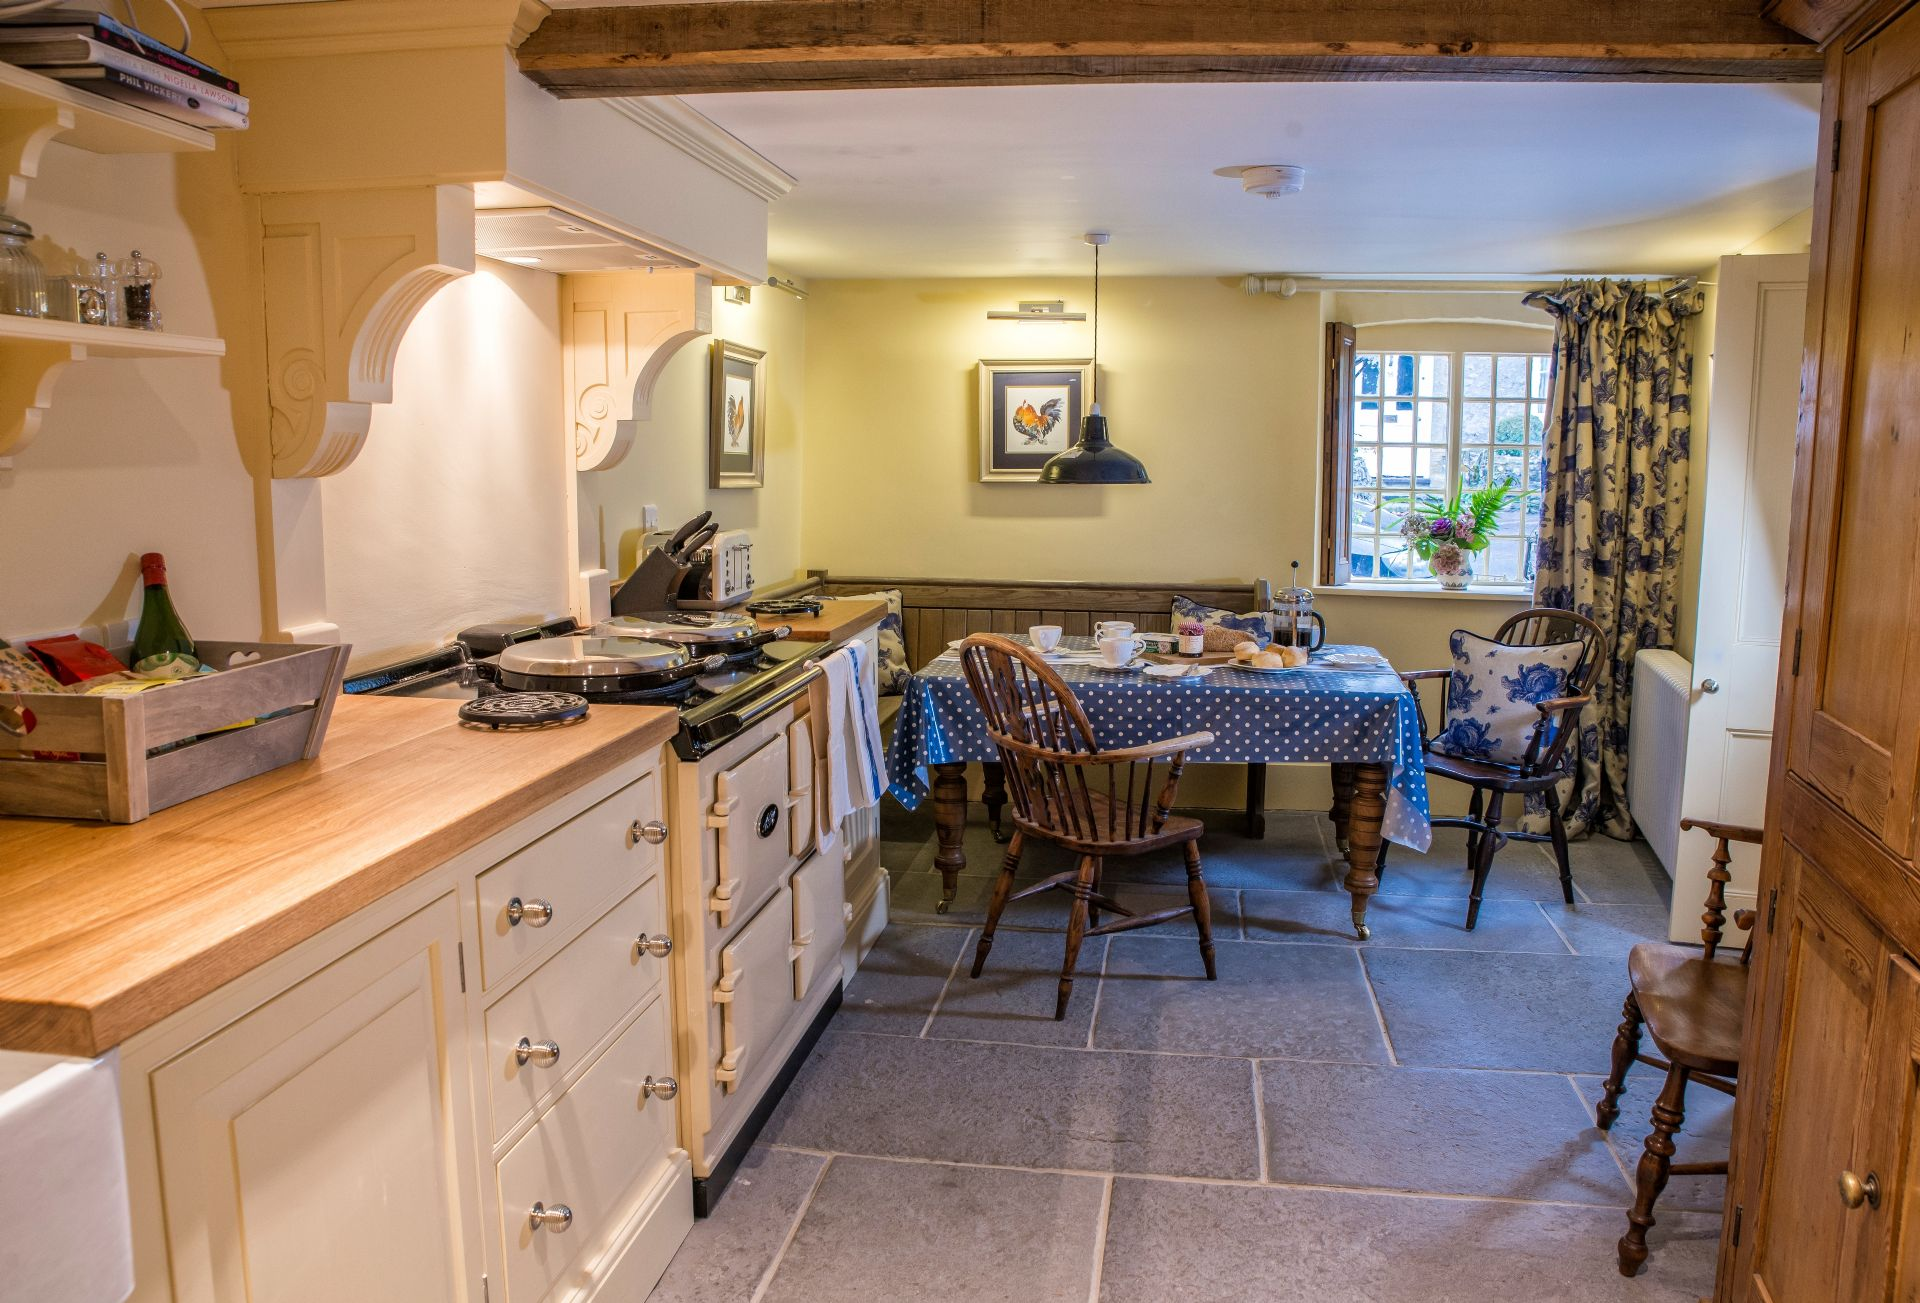 Laundry Cottage is located in Evershot and surrounding villages